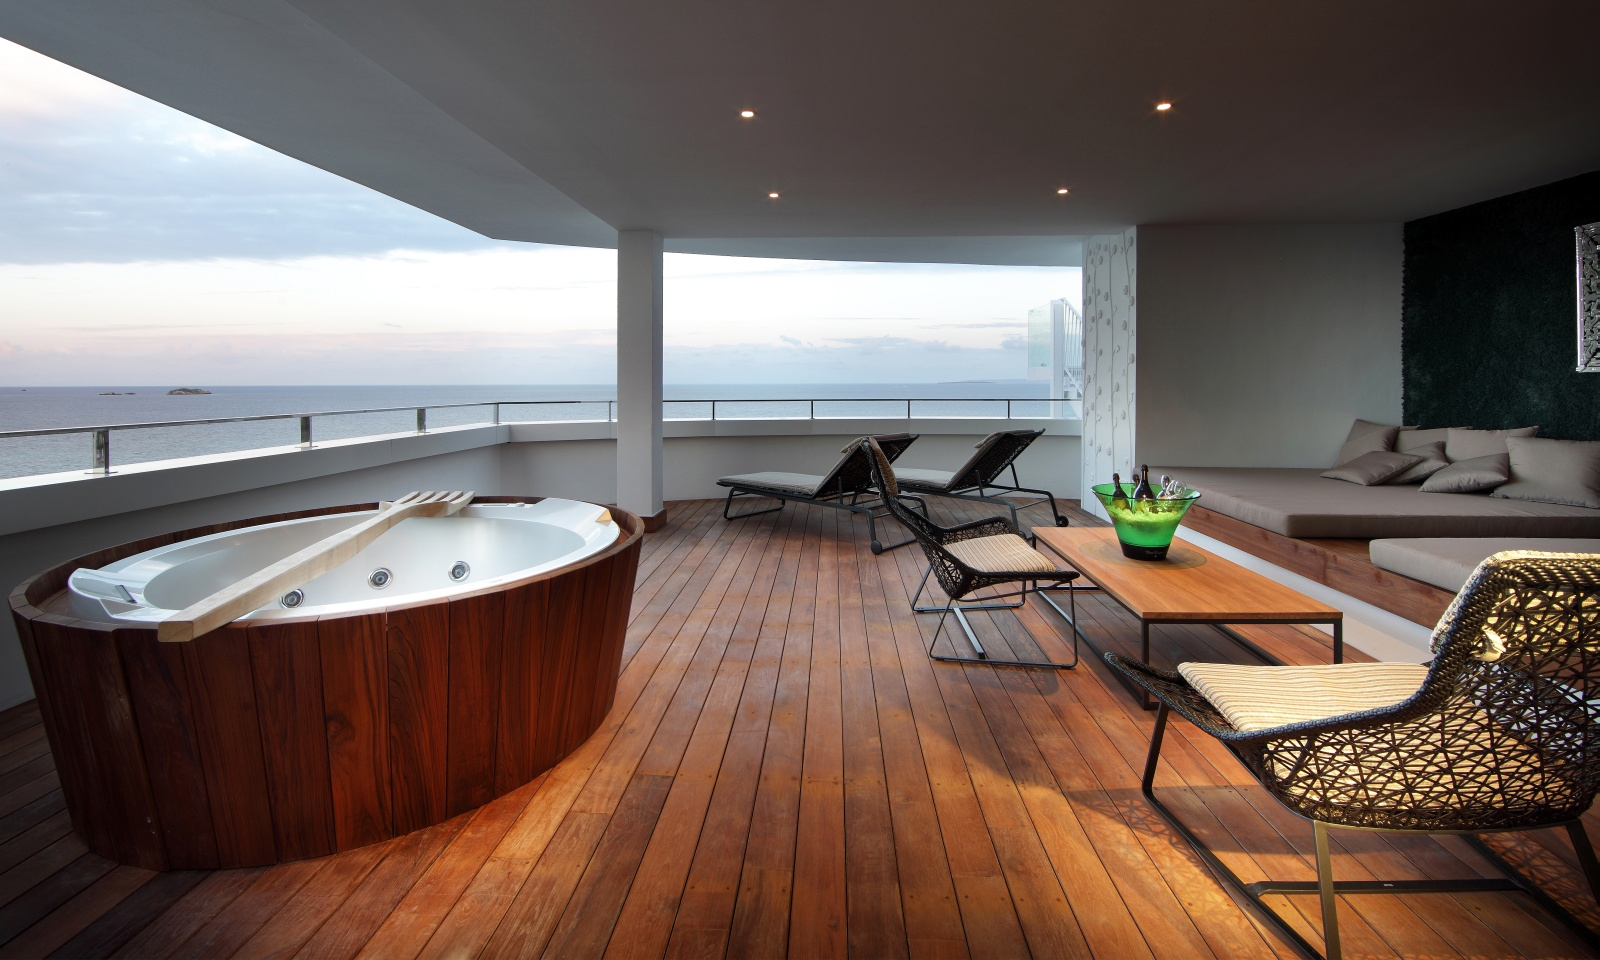 Jacuzzi Pool Hotel Room Ushuaia Ibiza Beach Hotel The Best Pool Party In The World